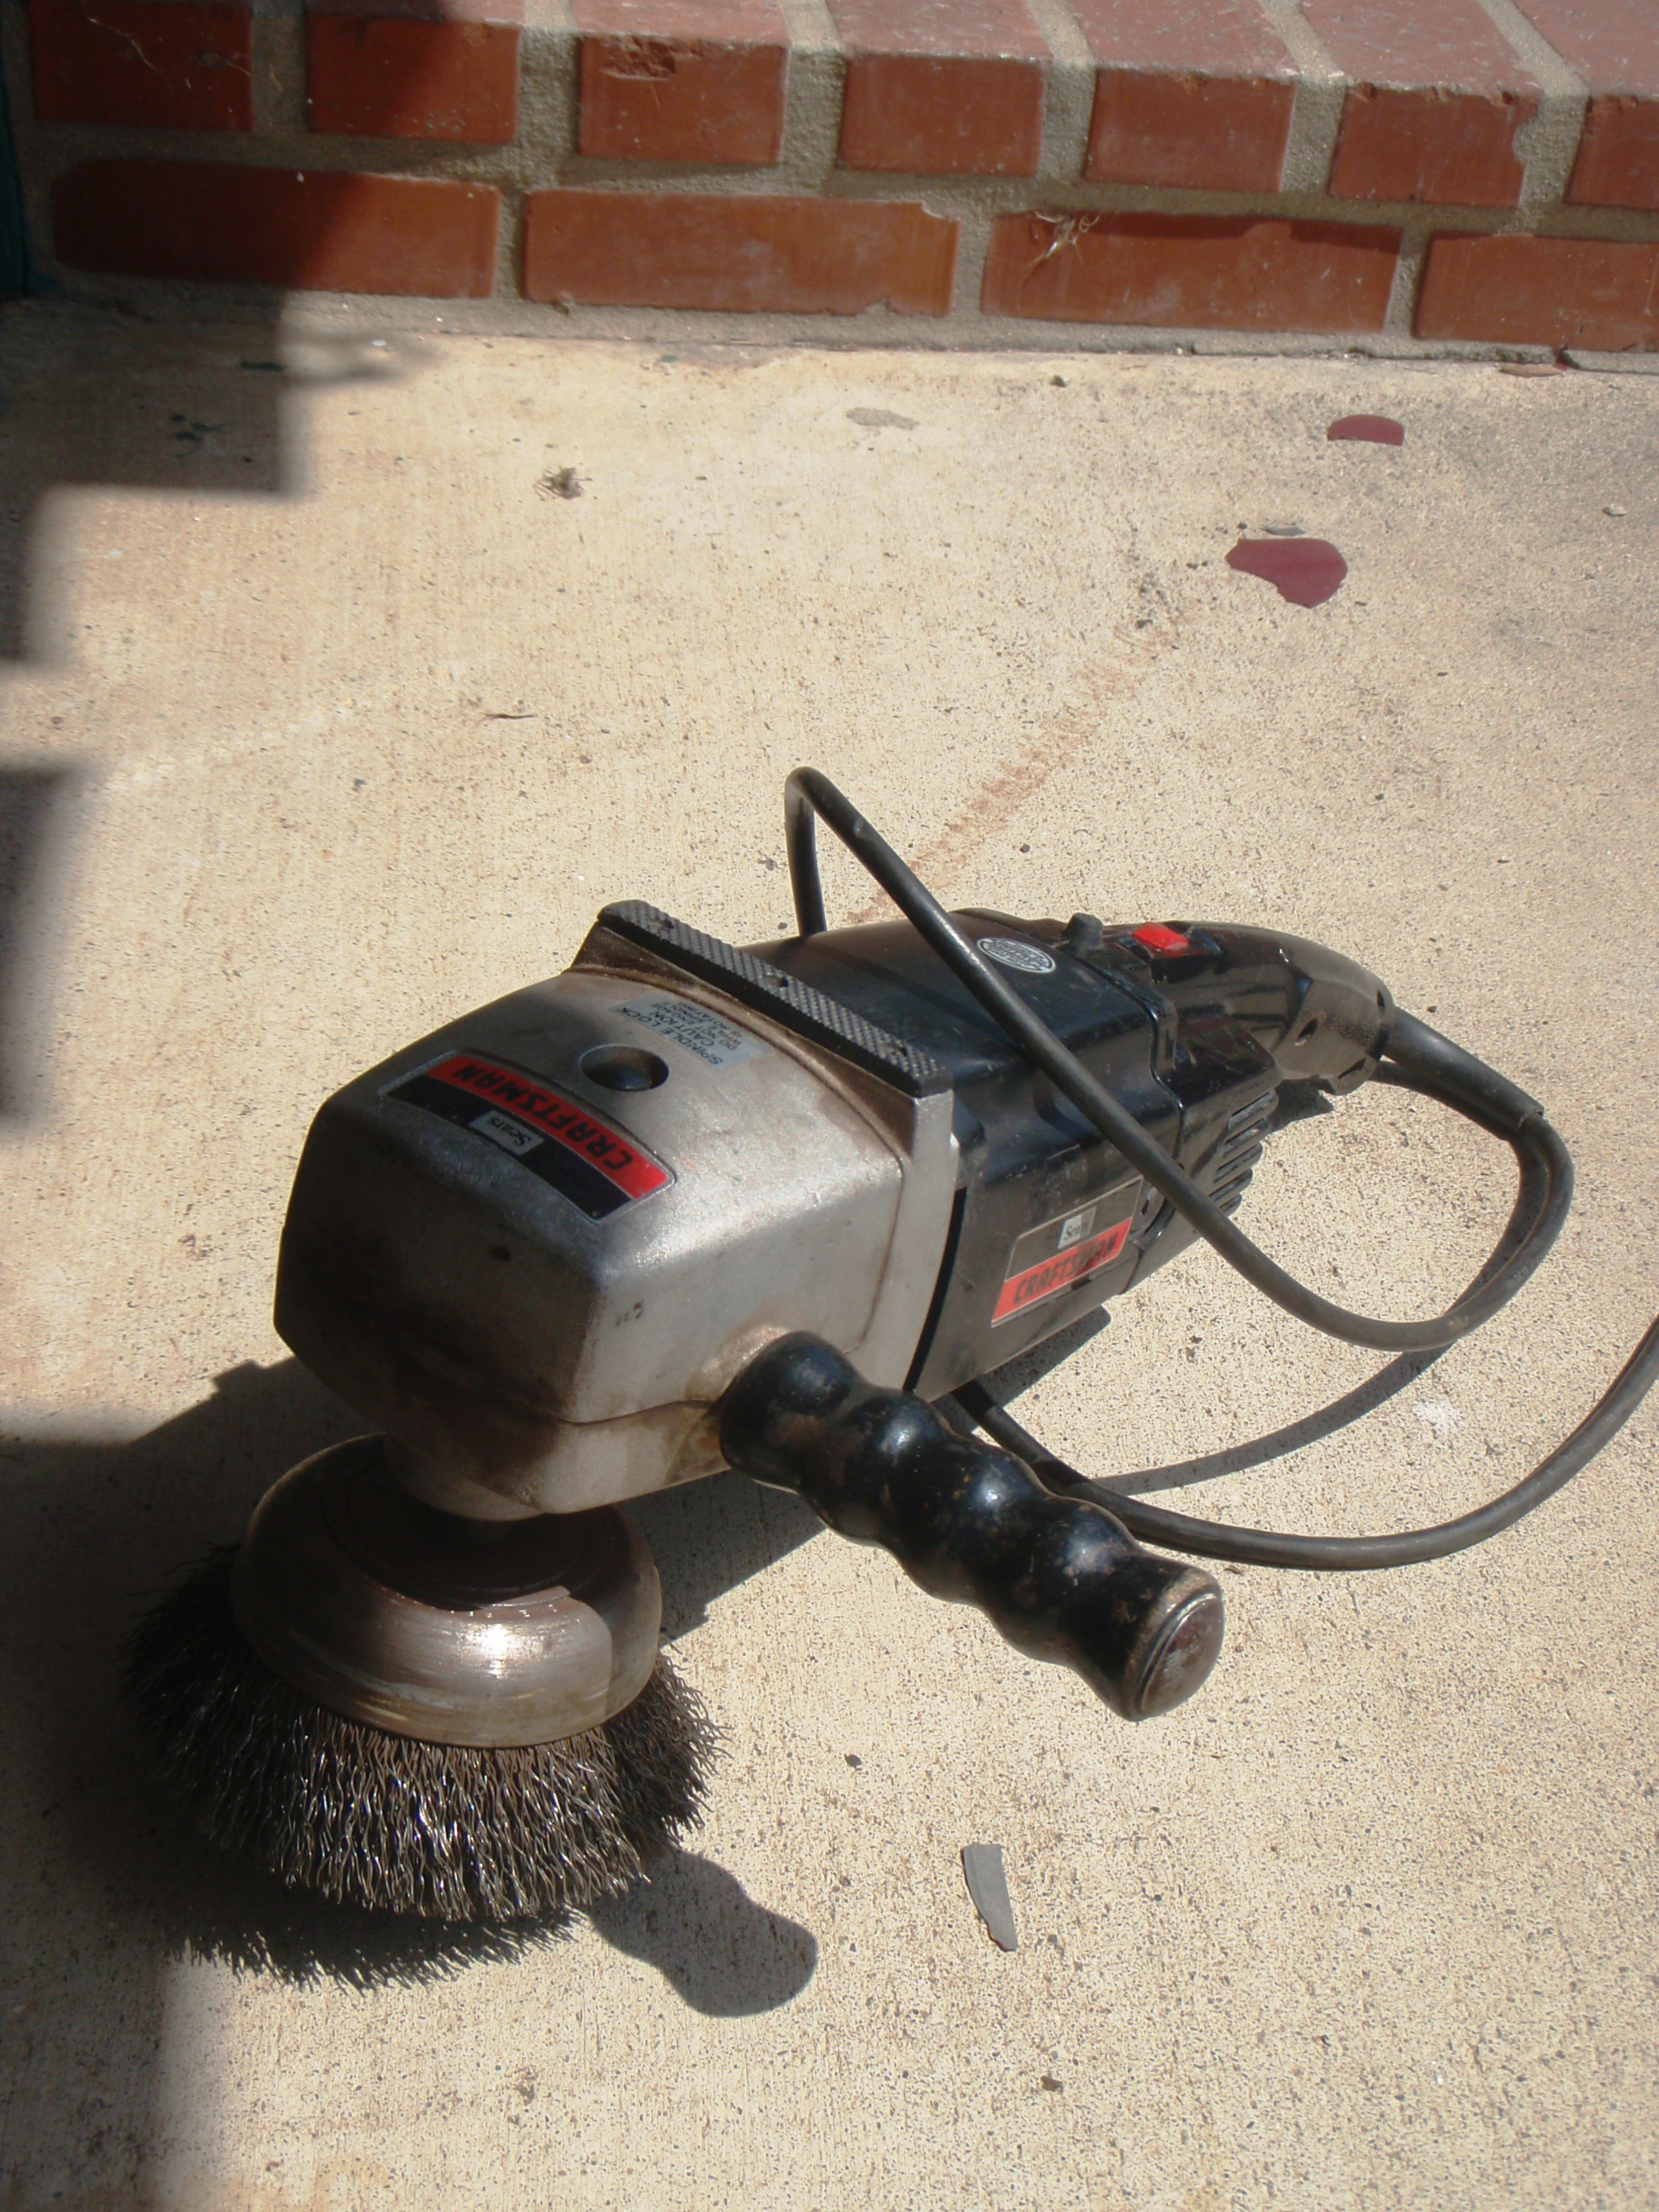 Picture of Sanding, Grinding, and More Sanding